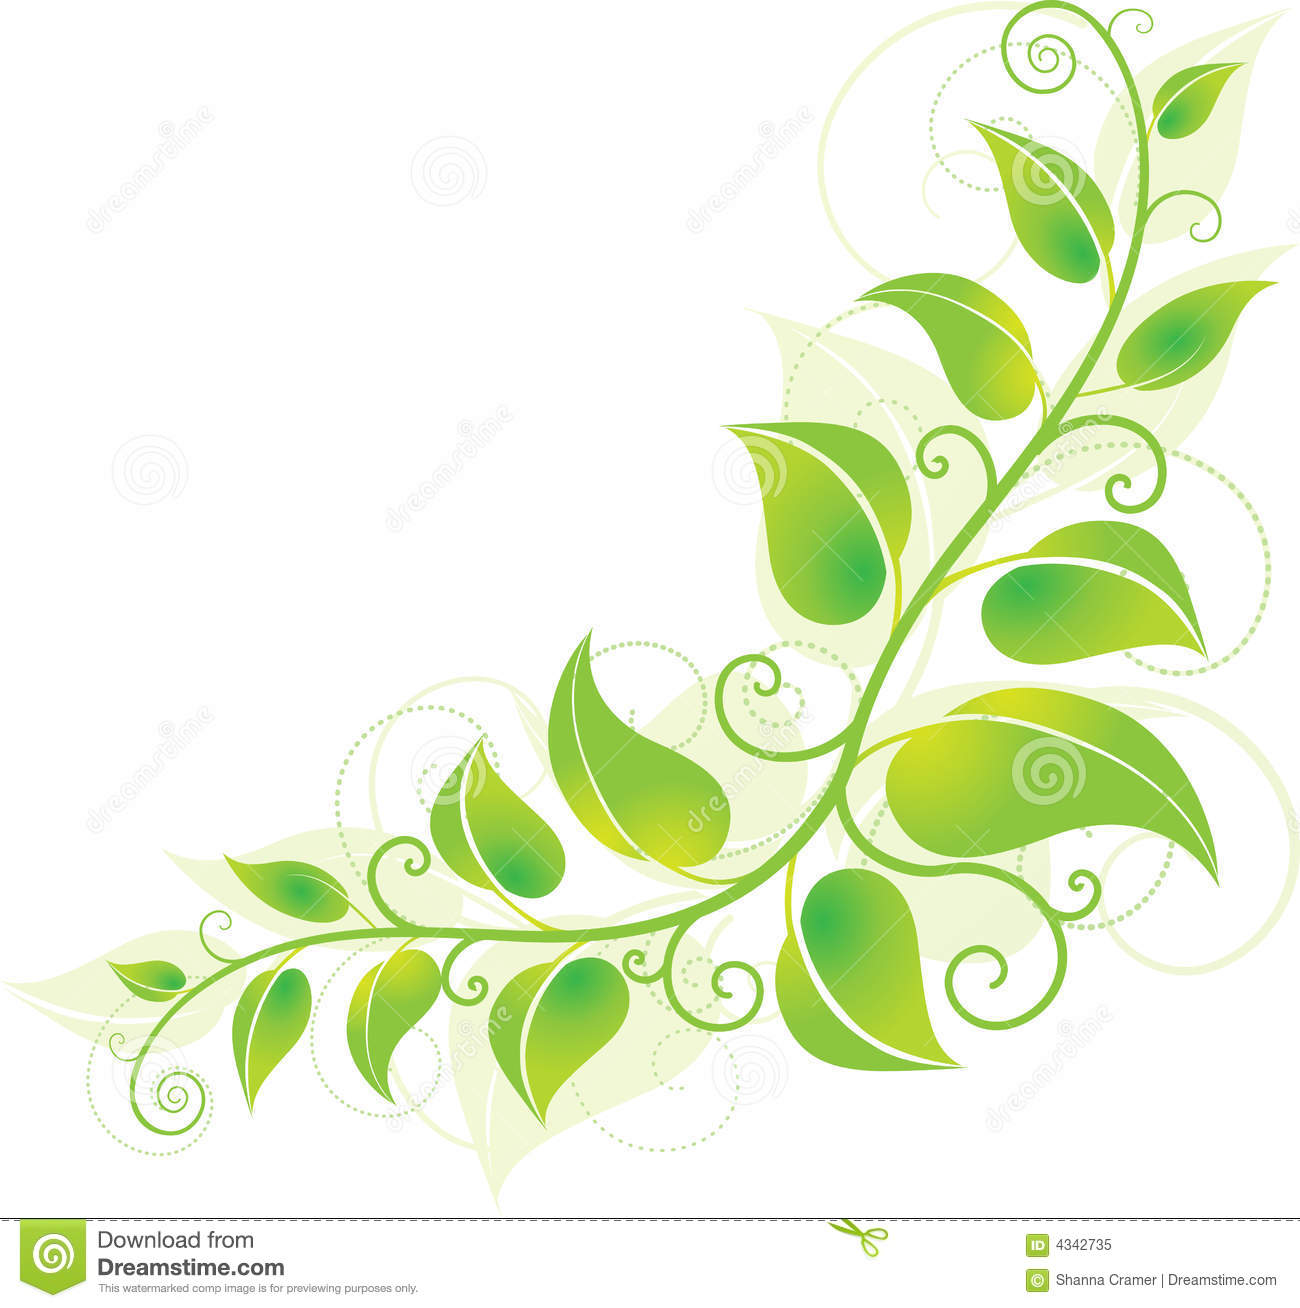 Green Corner Vine Royalty Free Stock Photo - Image: 4342735